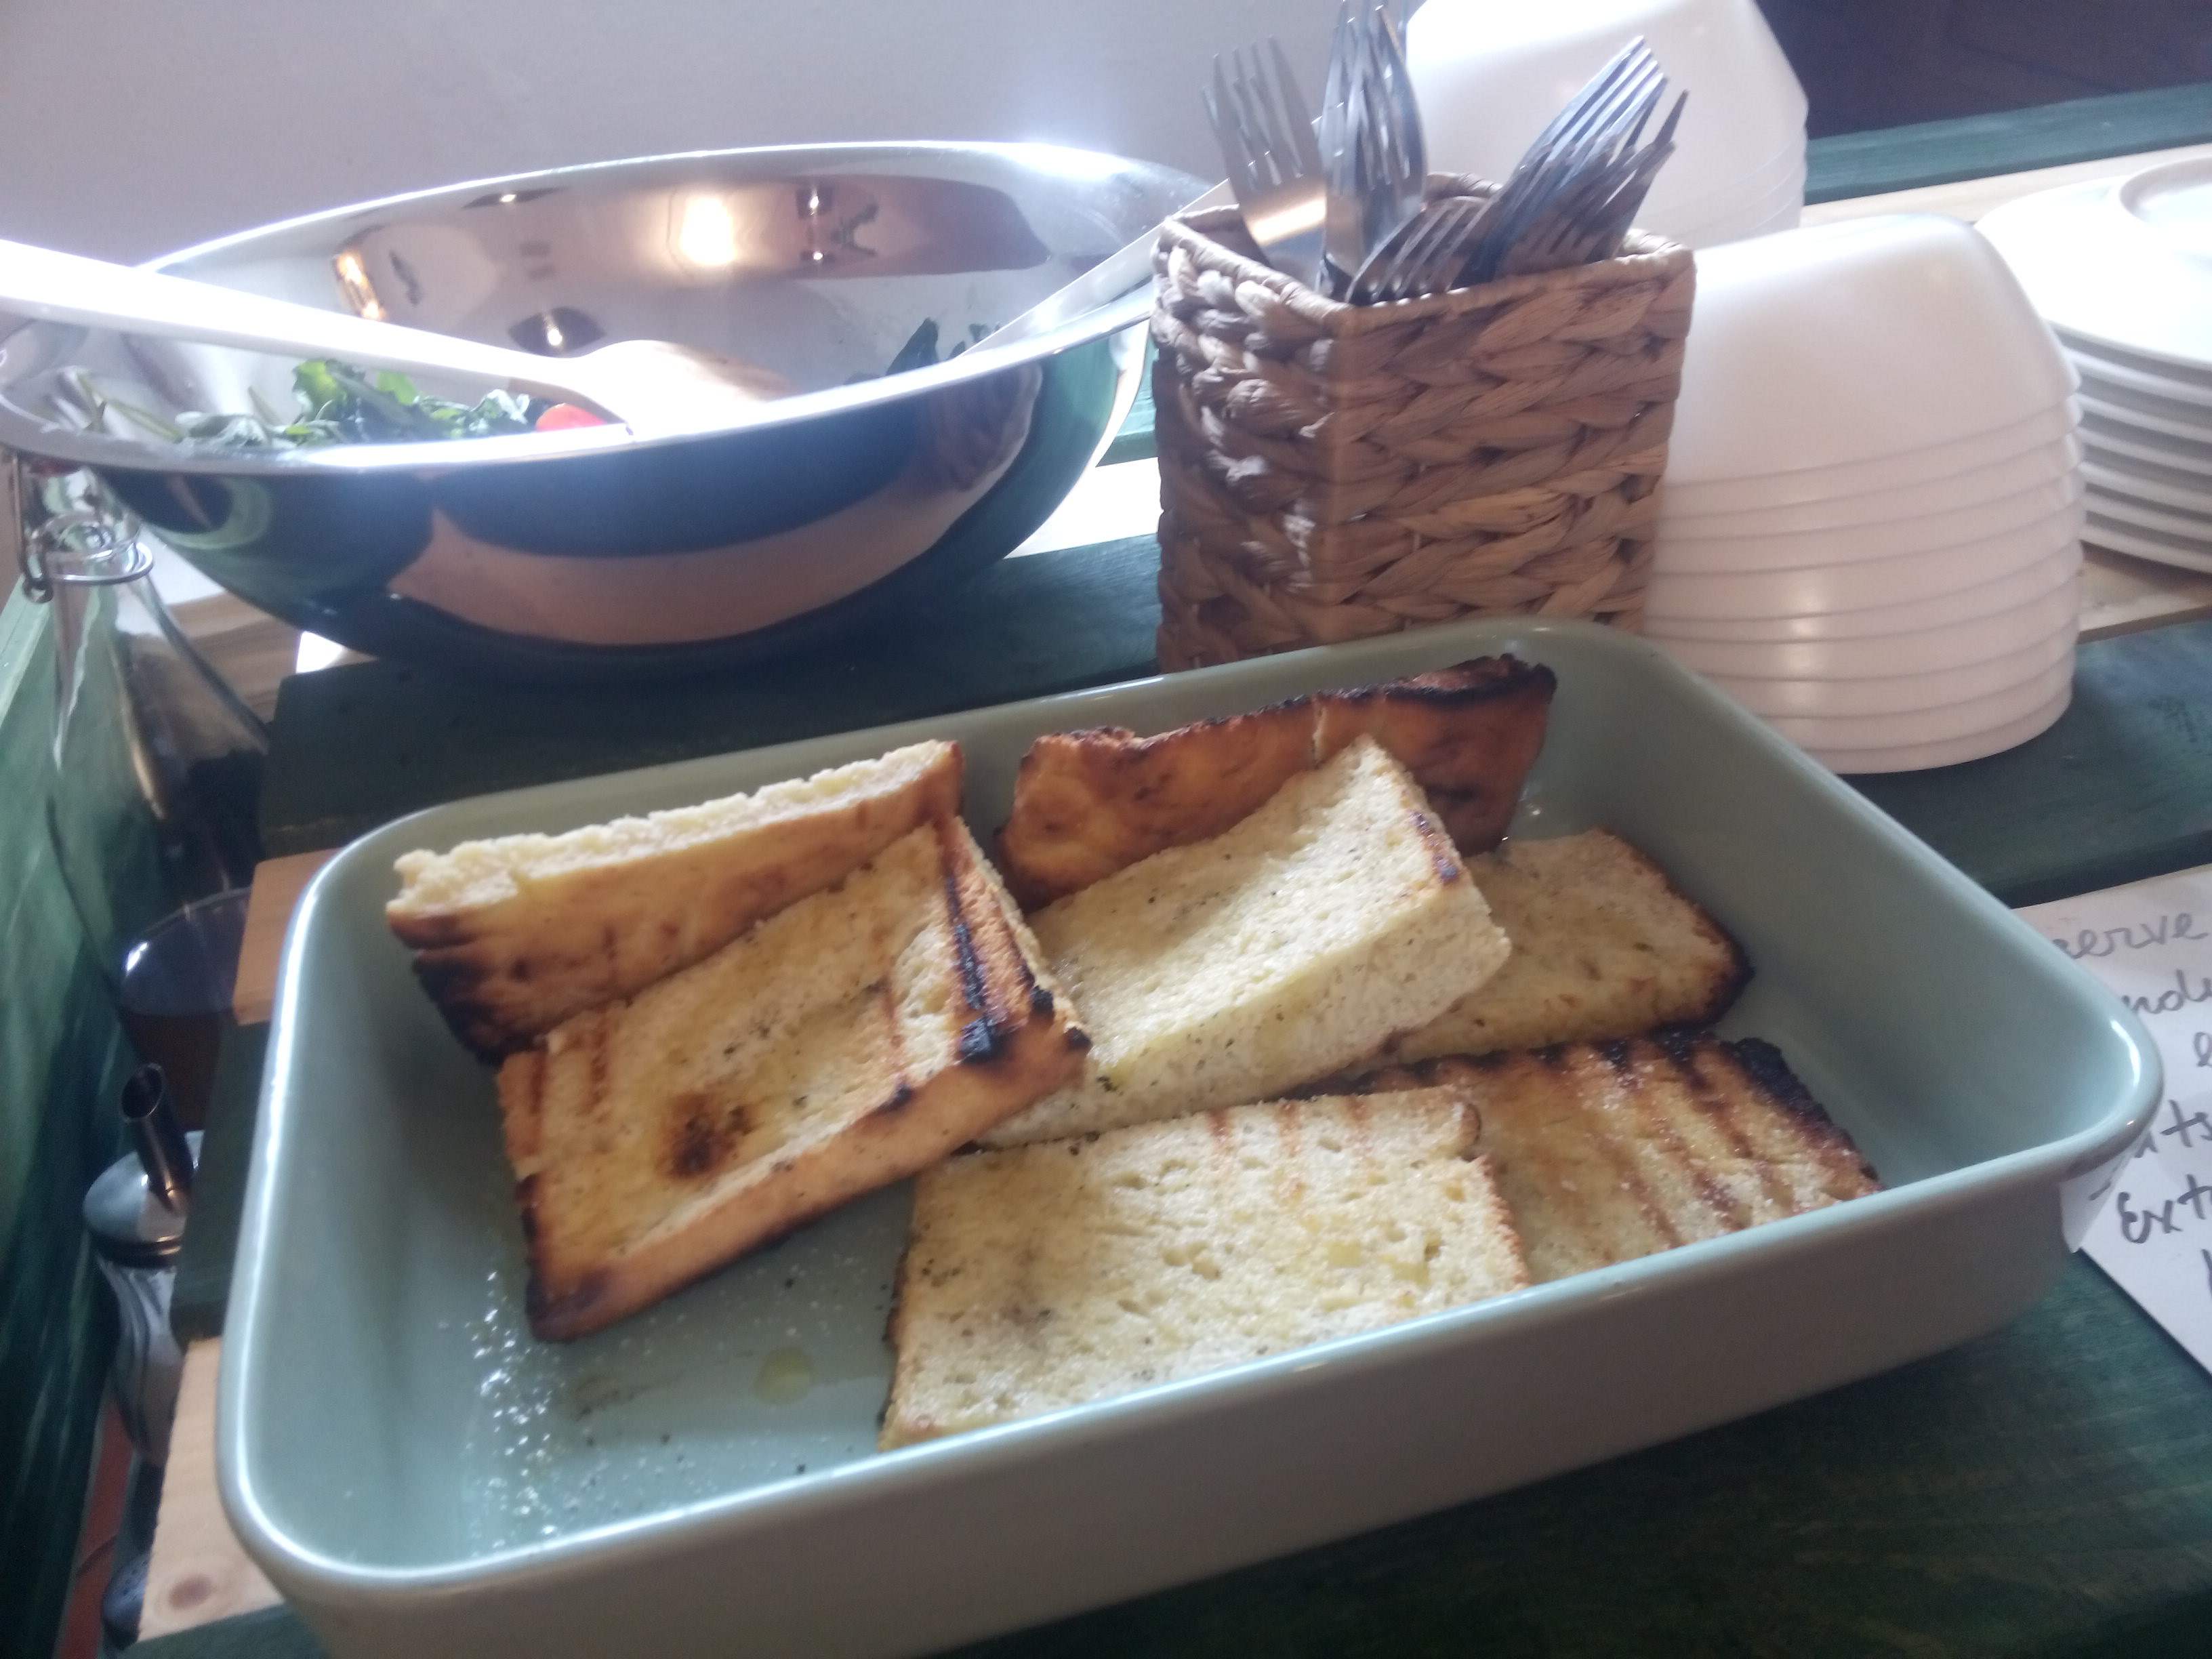 A blue tray with fat slices of ciabatta garlic bread and a silver bowl behind